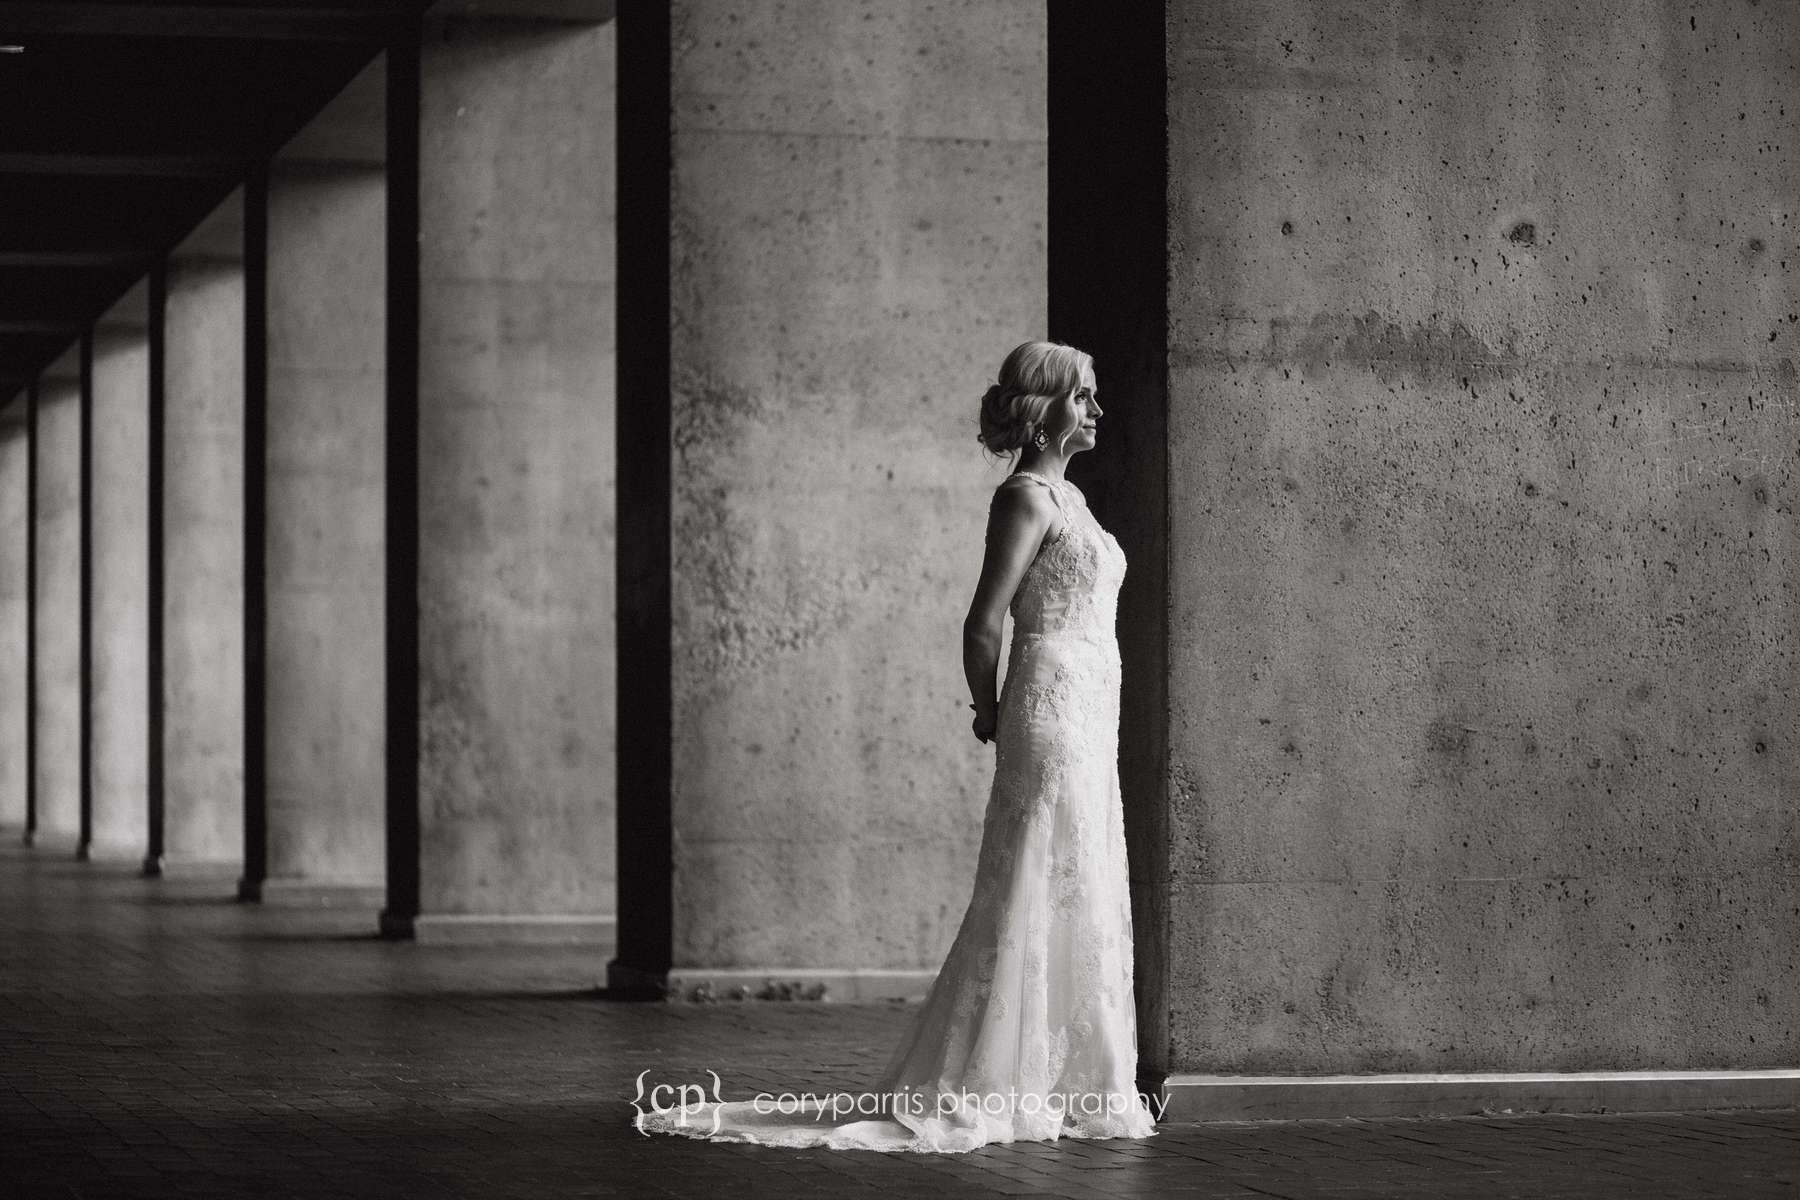 Stunning b&w bridal portrait photography in Seattle wedding